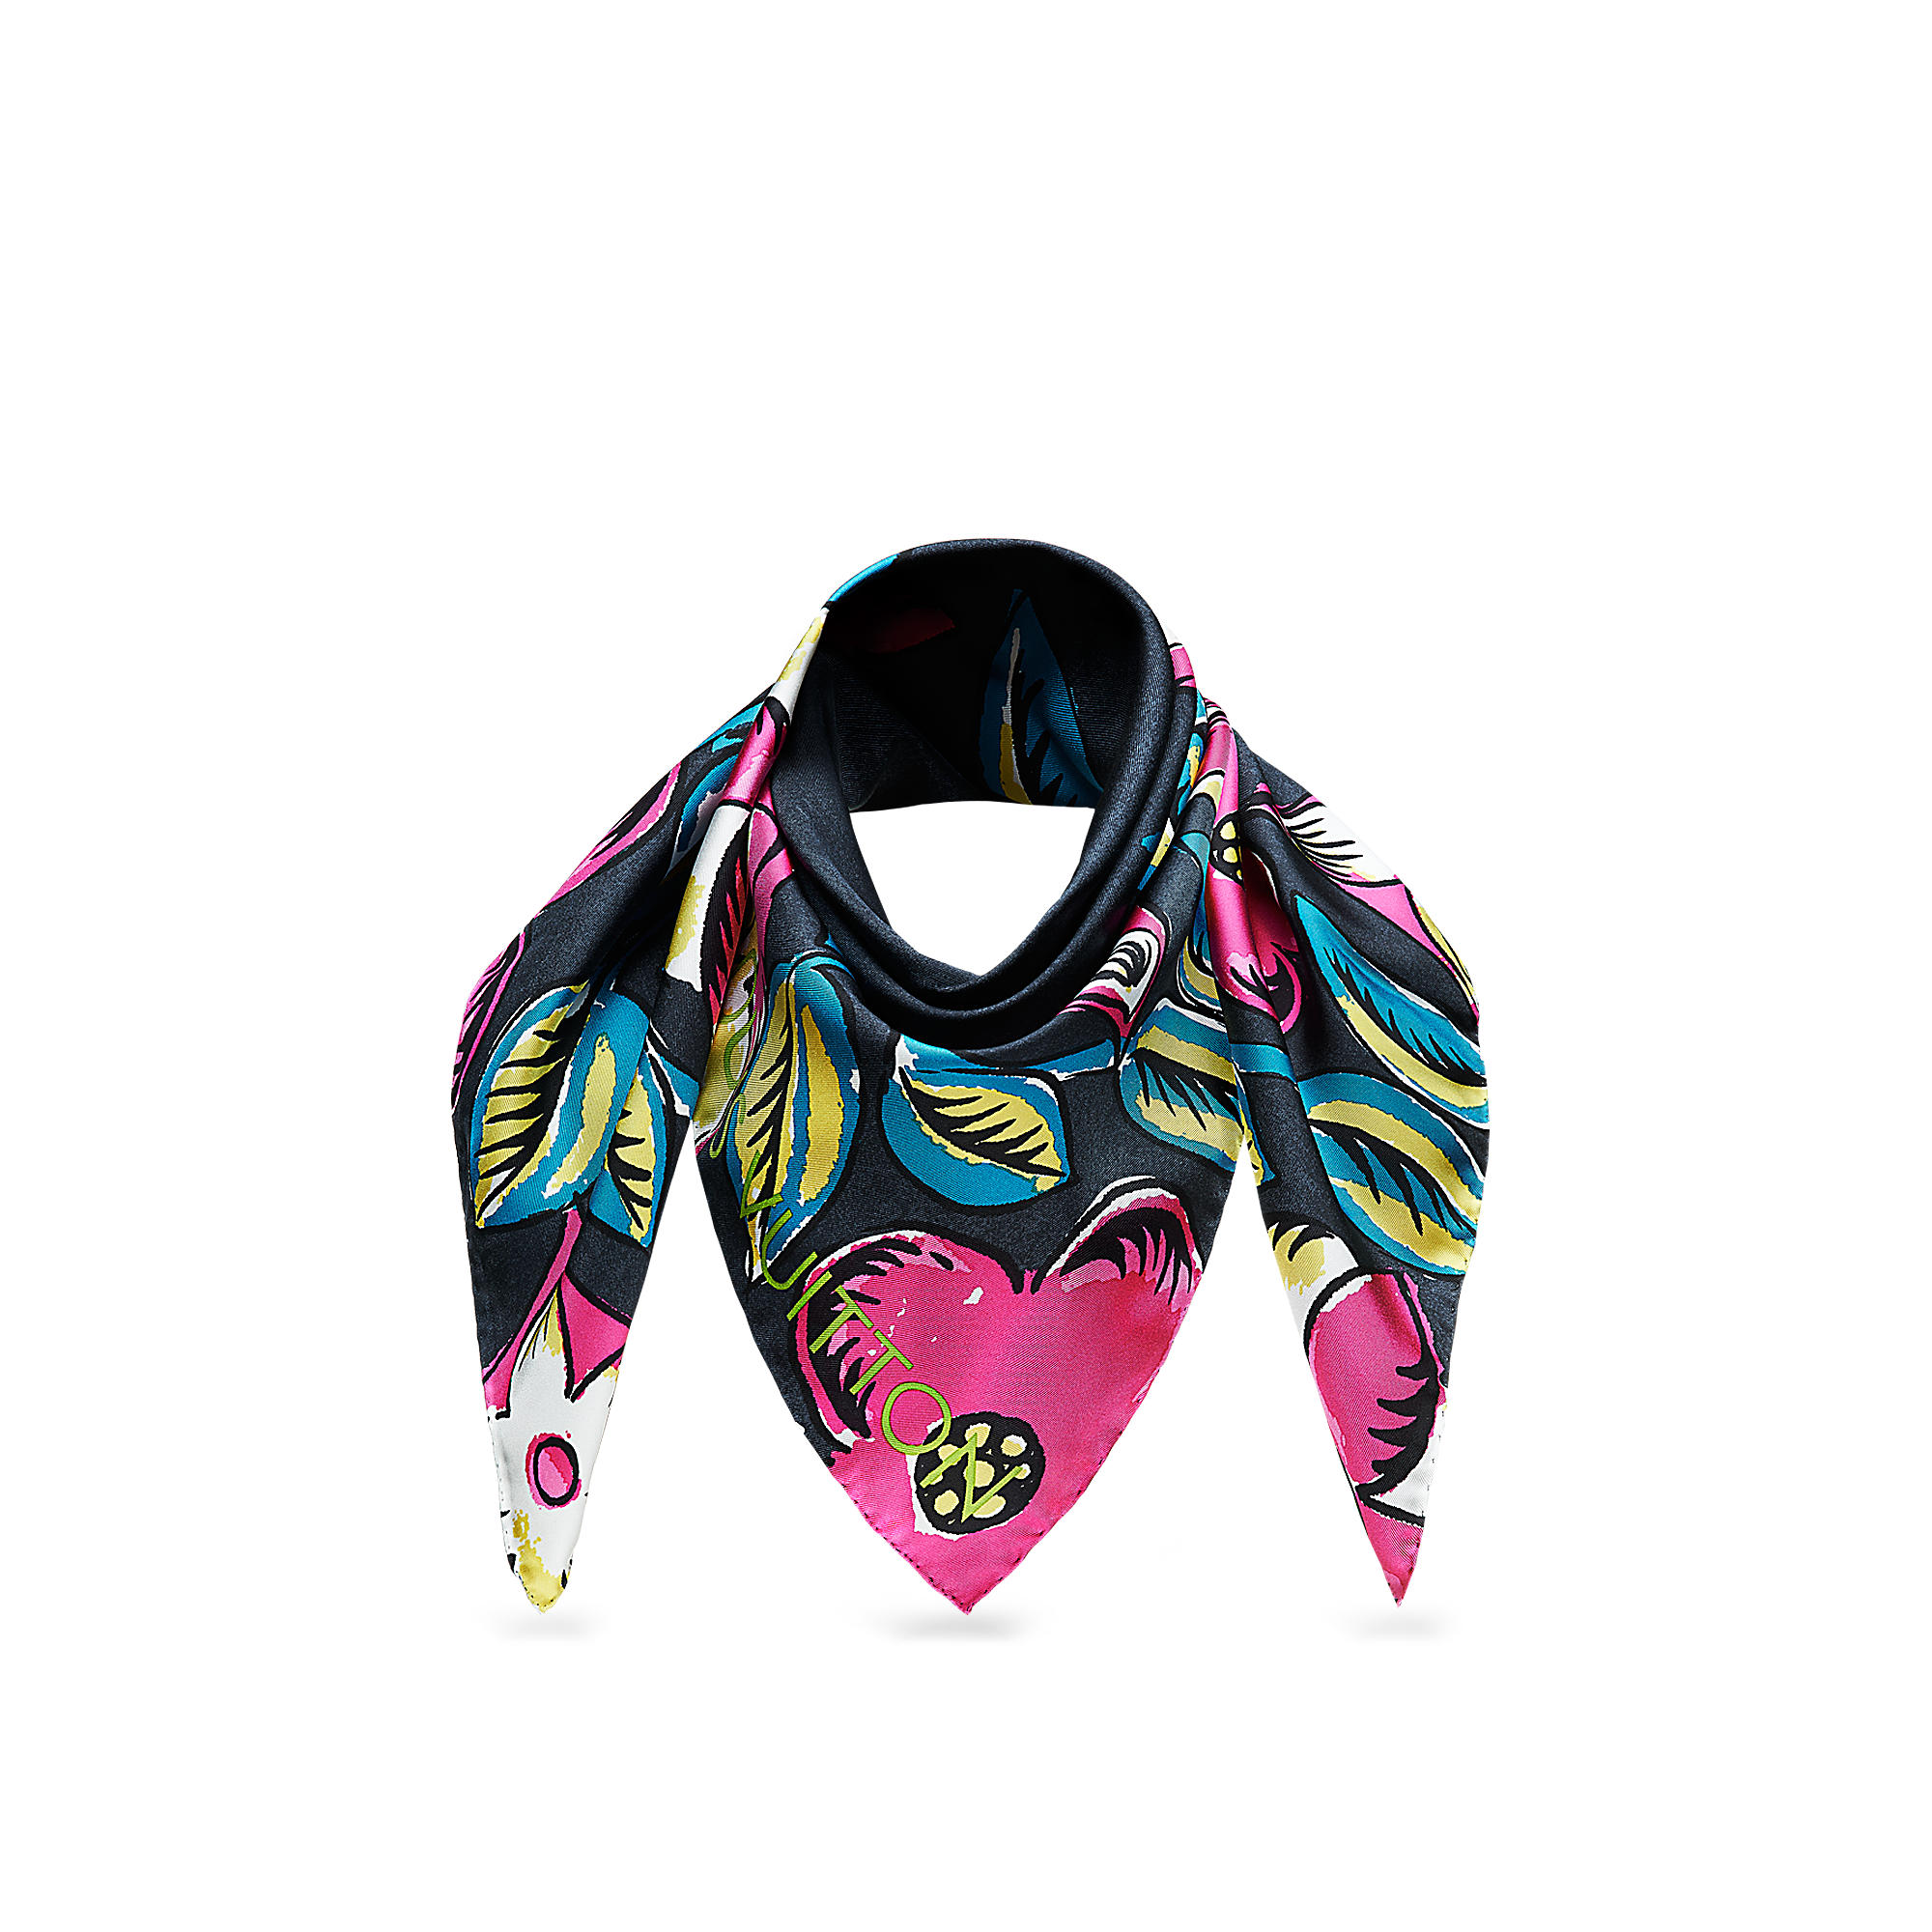 Louis Vuitton M73967 Foulard Close To Monogram